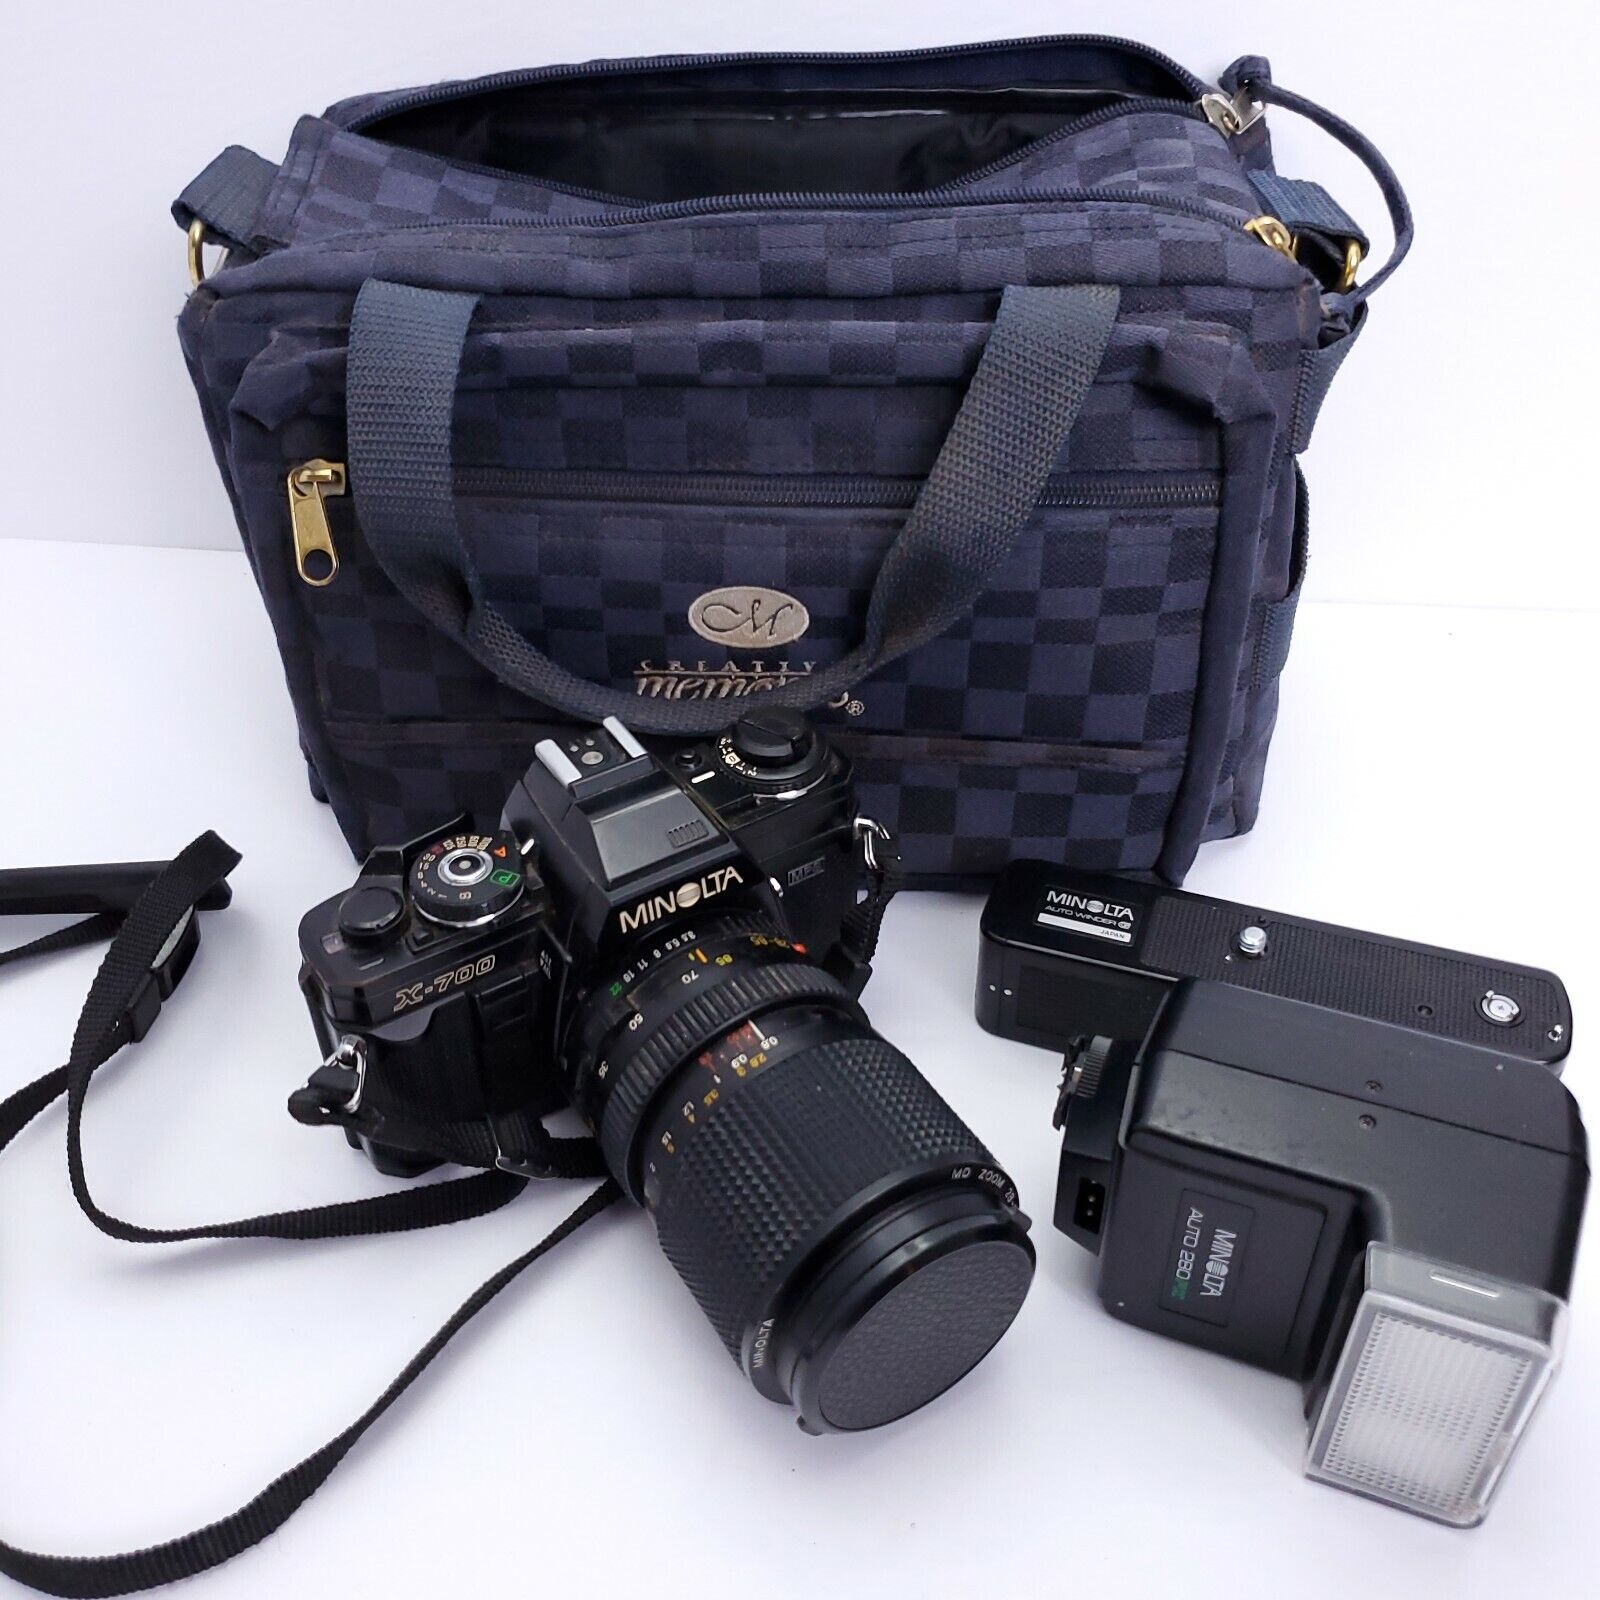 Minolta X-700 SLR 35mm Film Camera Kit 28-85mm Zoom Lens Flash Winder Bag As-Is - $115.88